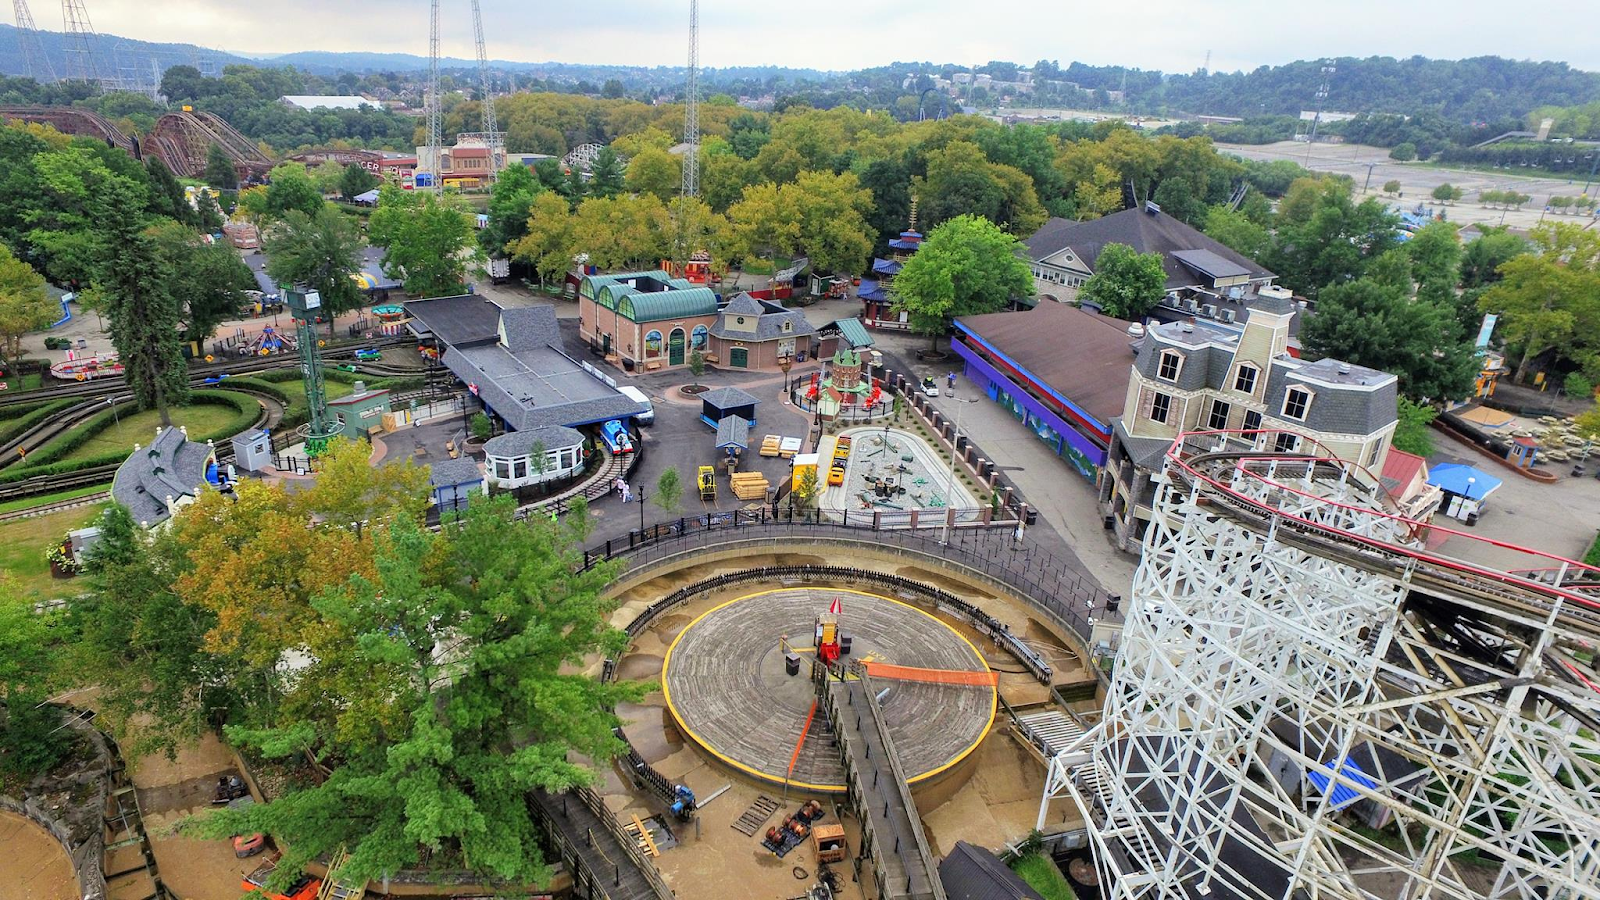 Kennywood Park